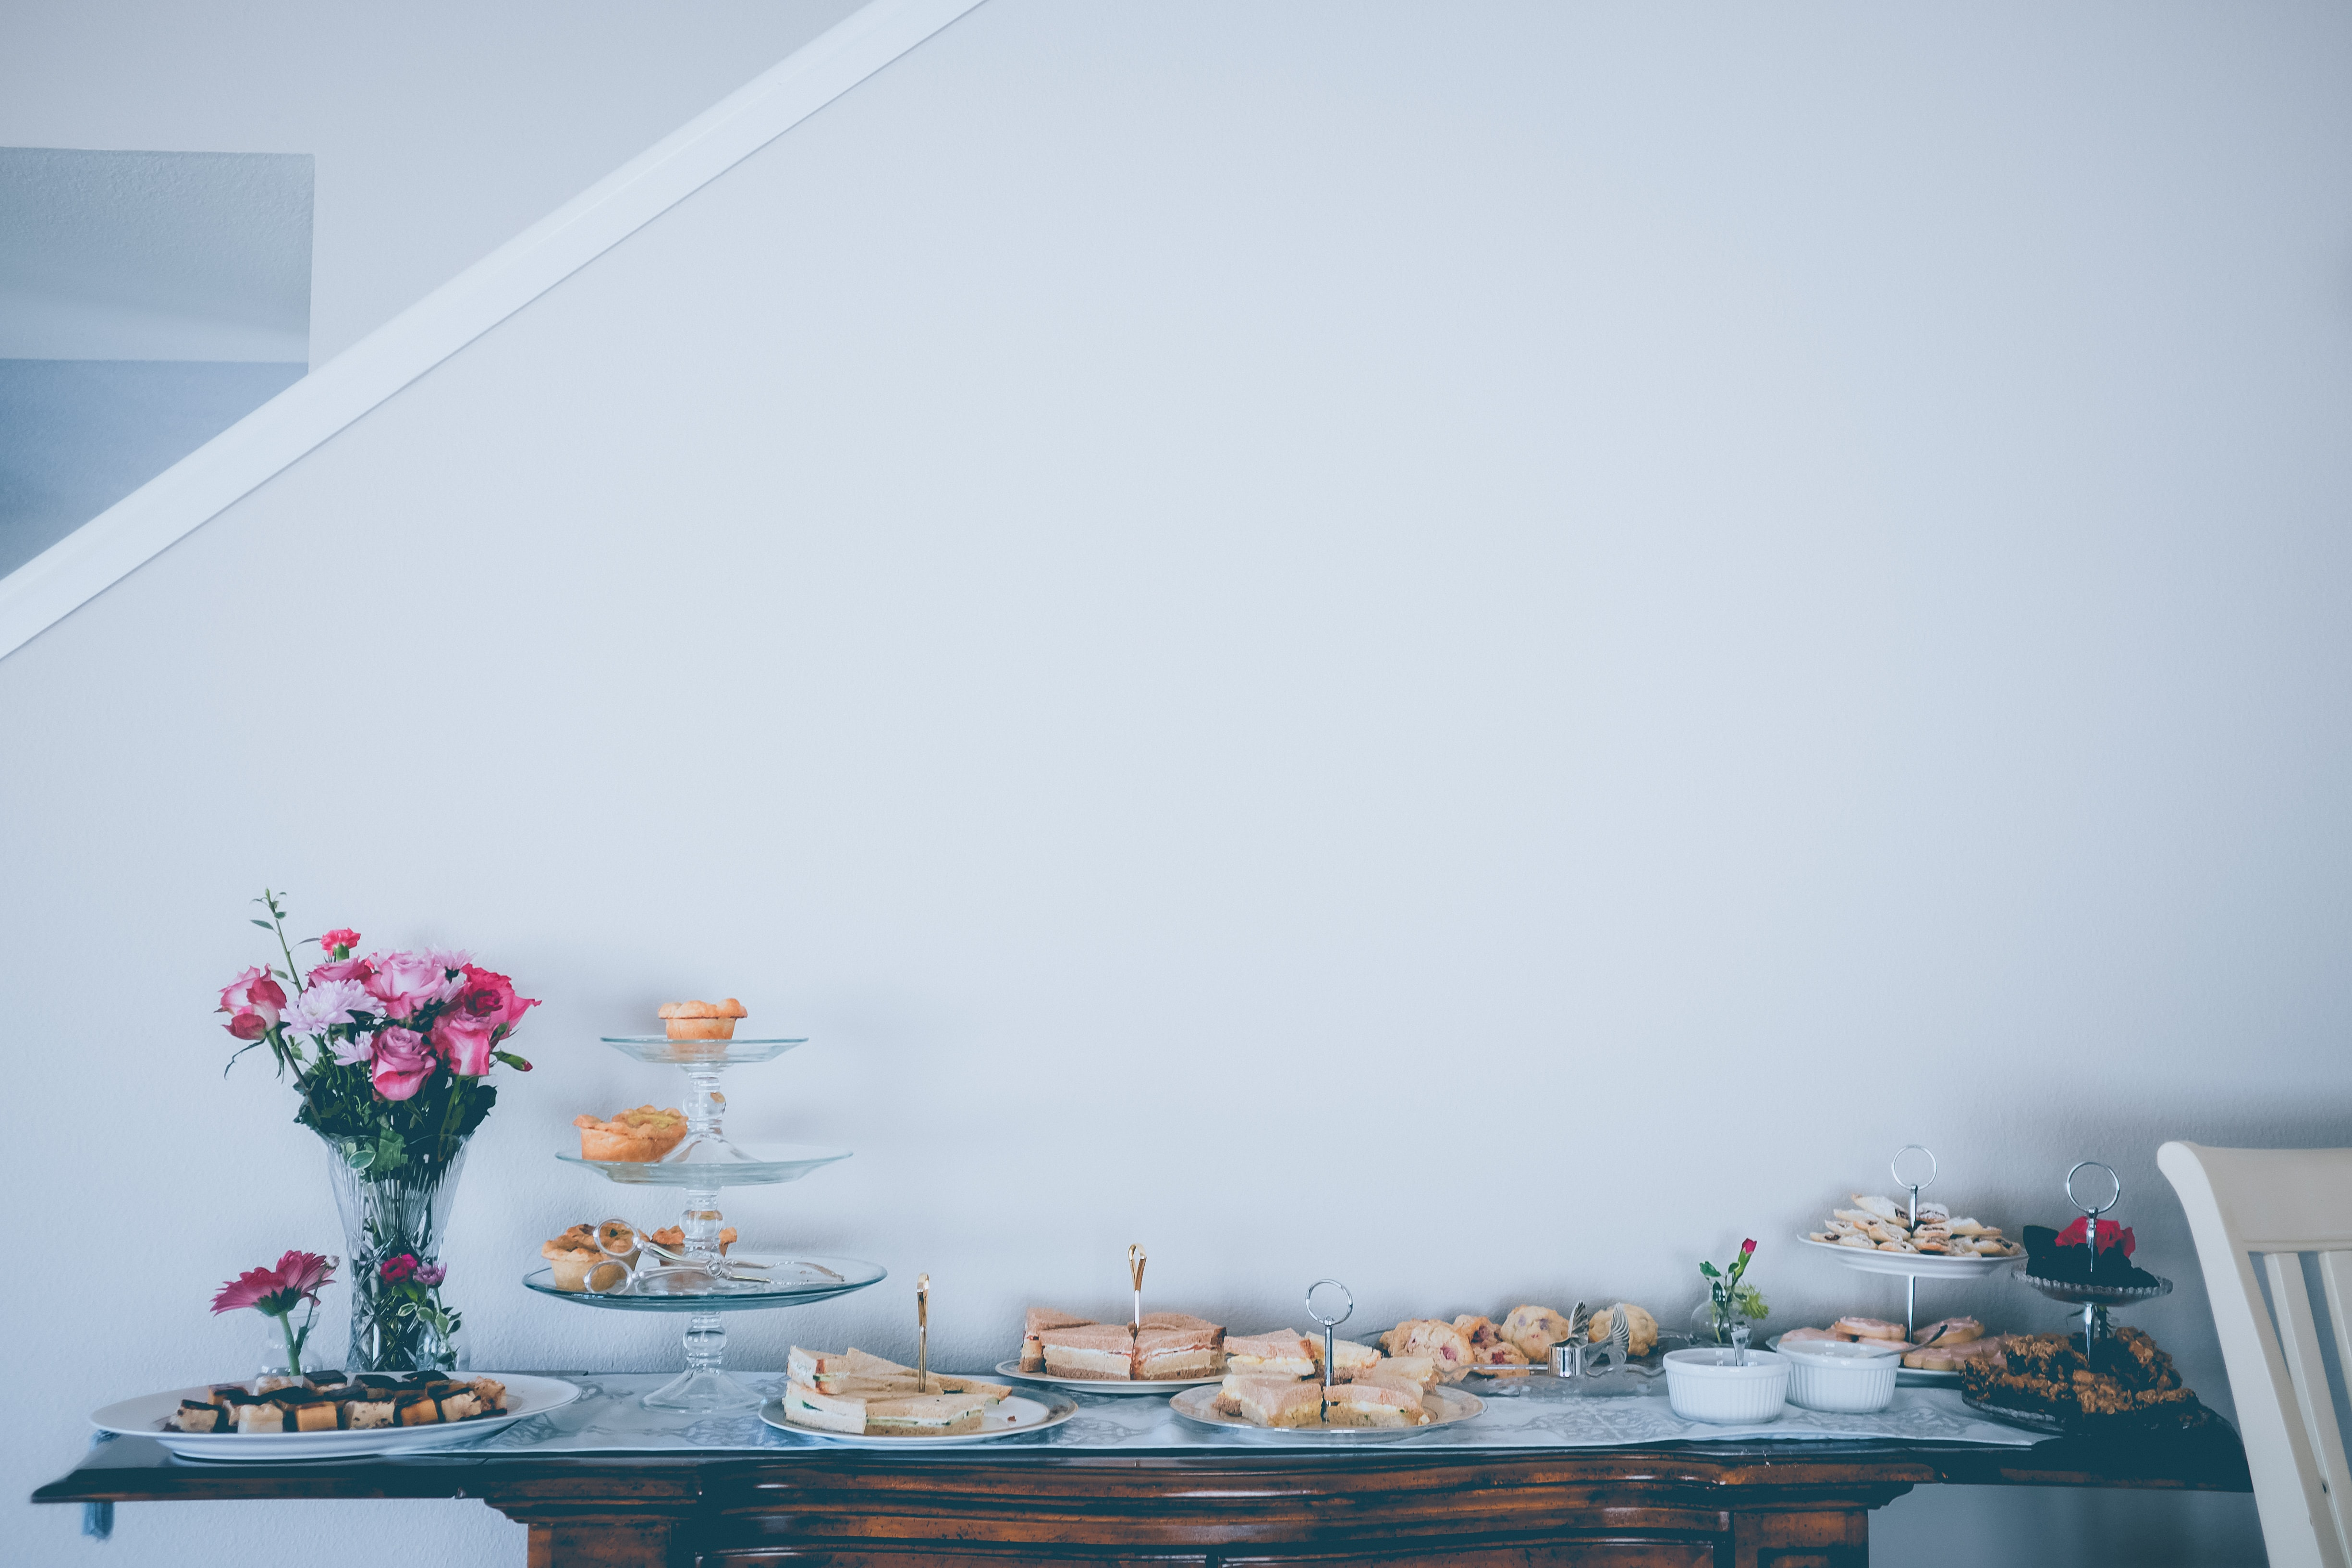 pastries on table